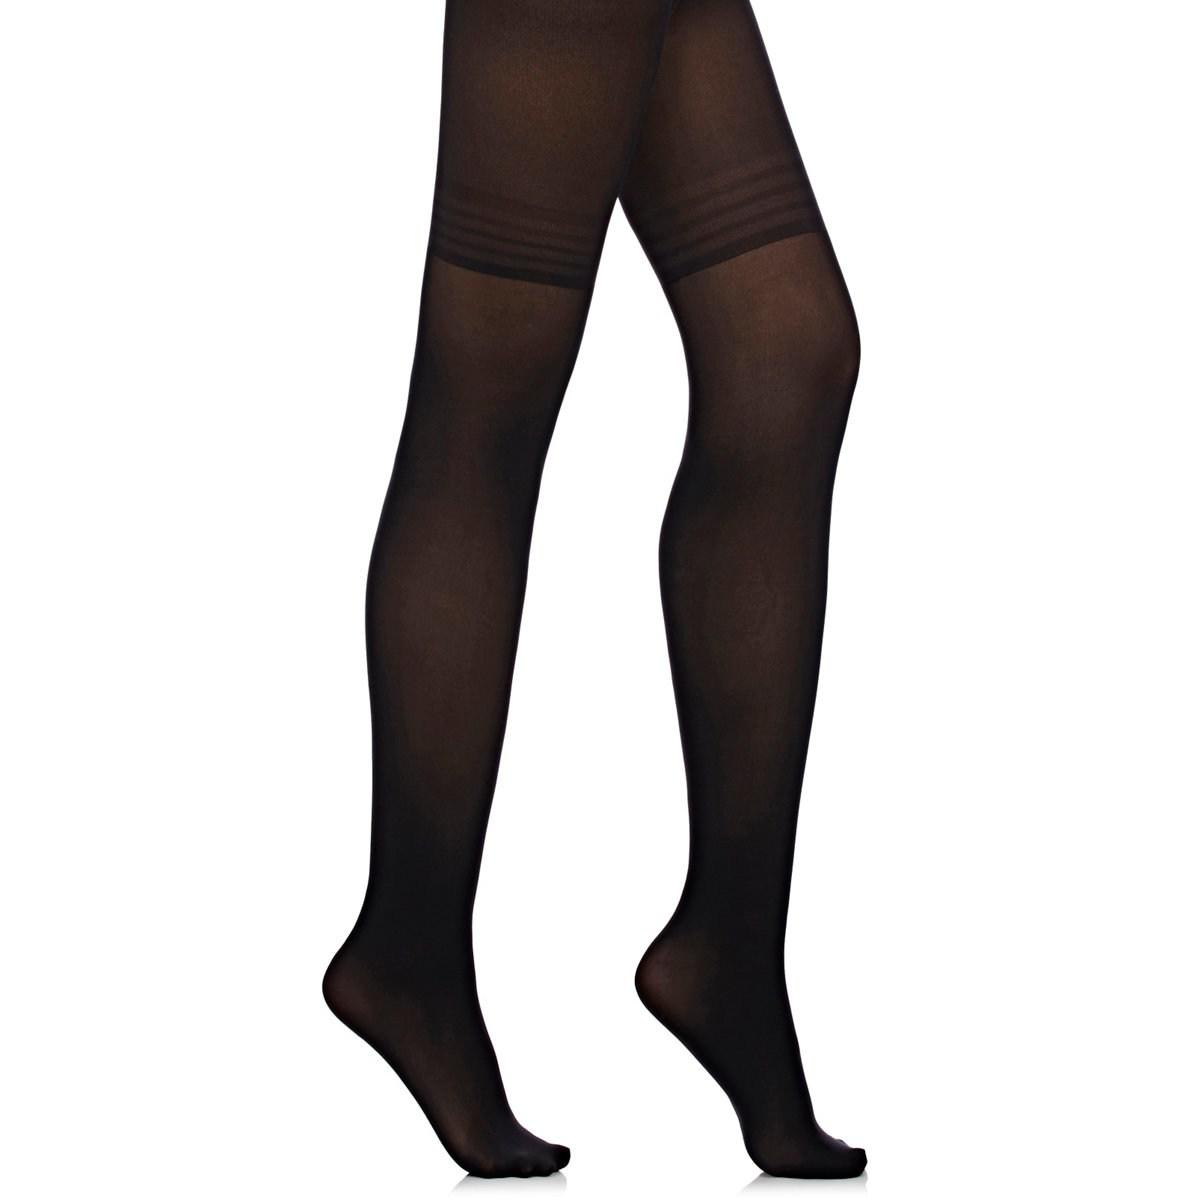 1b67a21489 Wolford Power Shape 50 Control Top Tights Size Xl in Black - Lyst